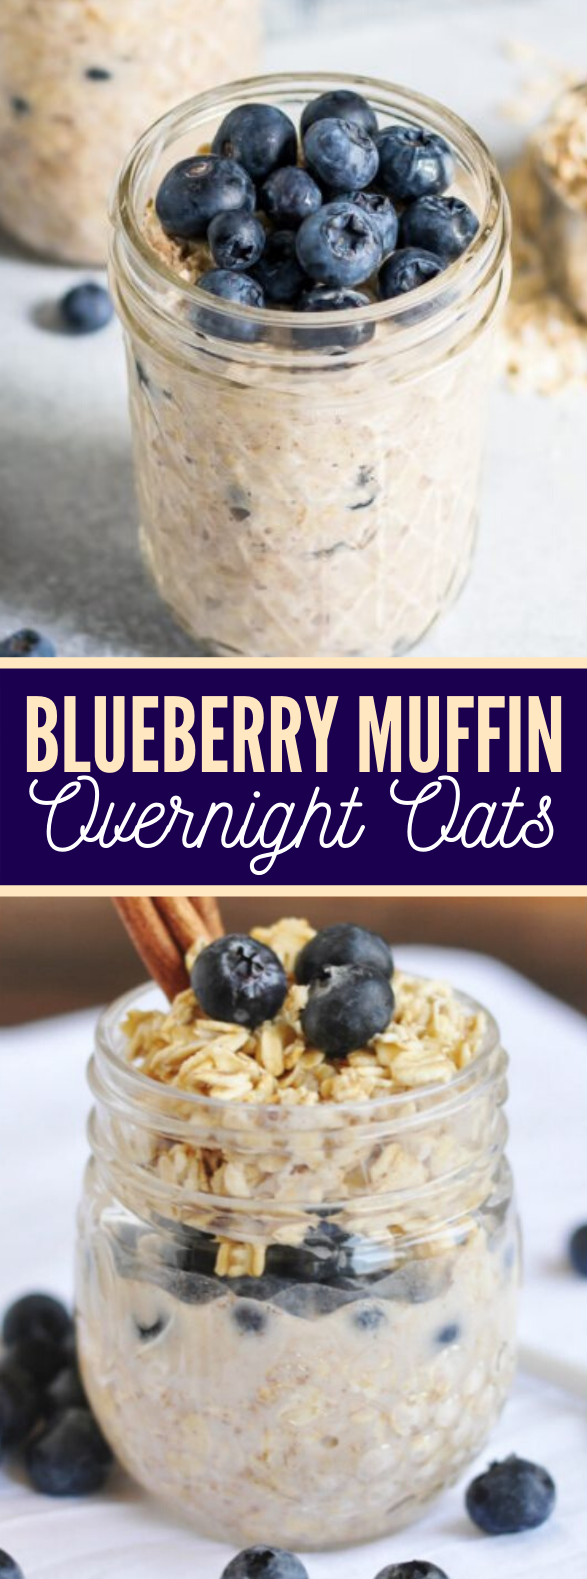 BLUEBERRY MUFFIN OVERNIGHT OATS #diet #breakfast